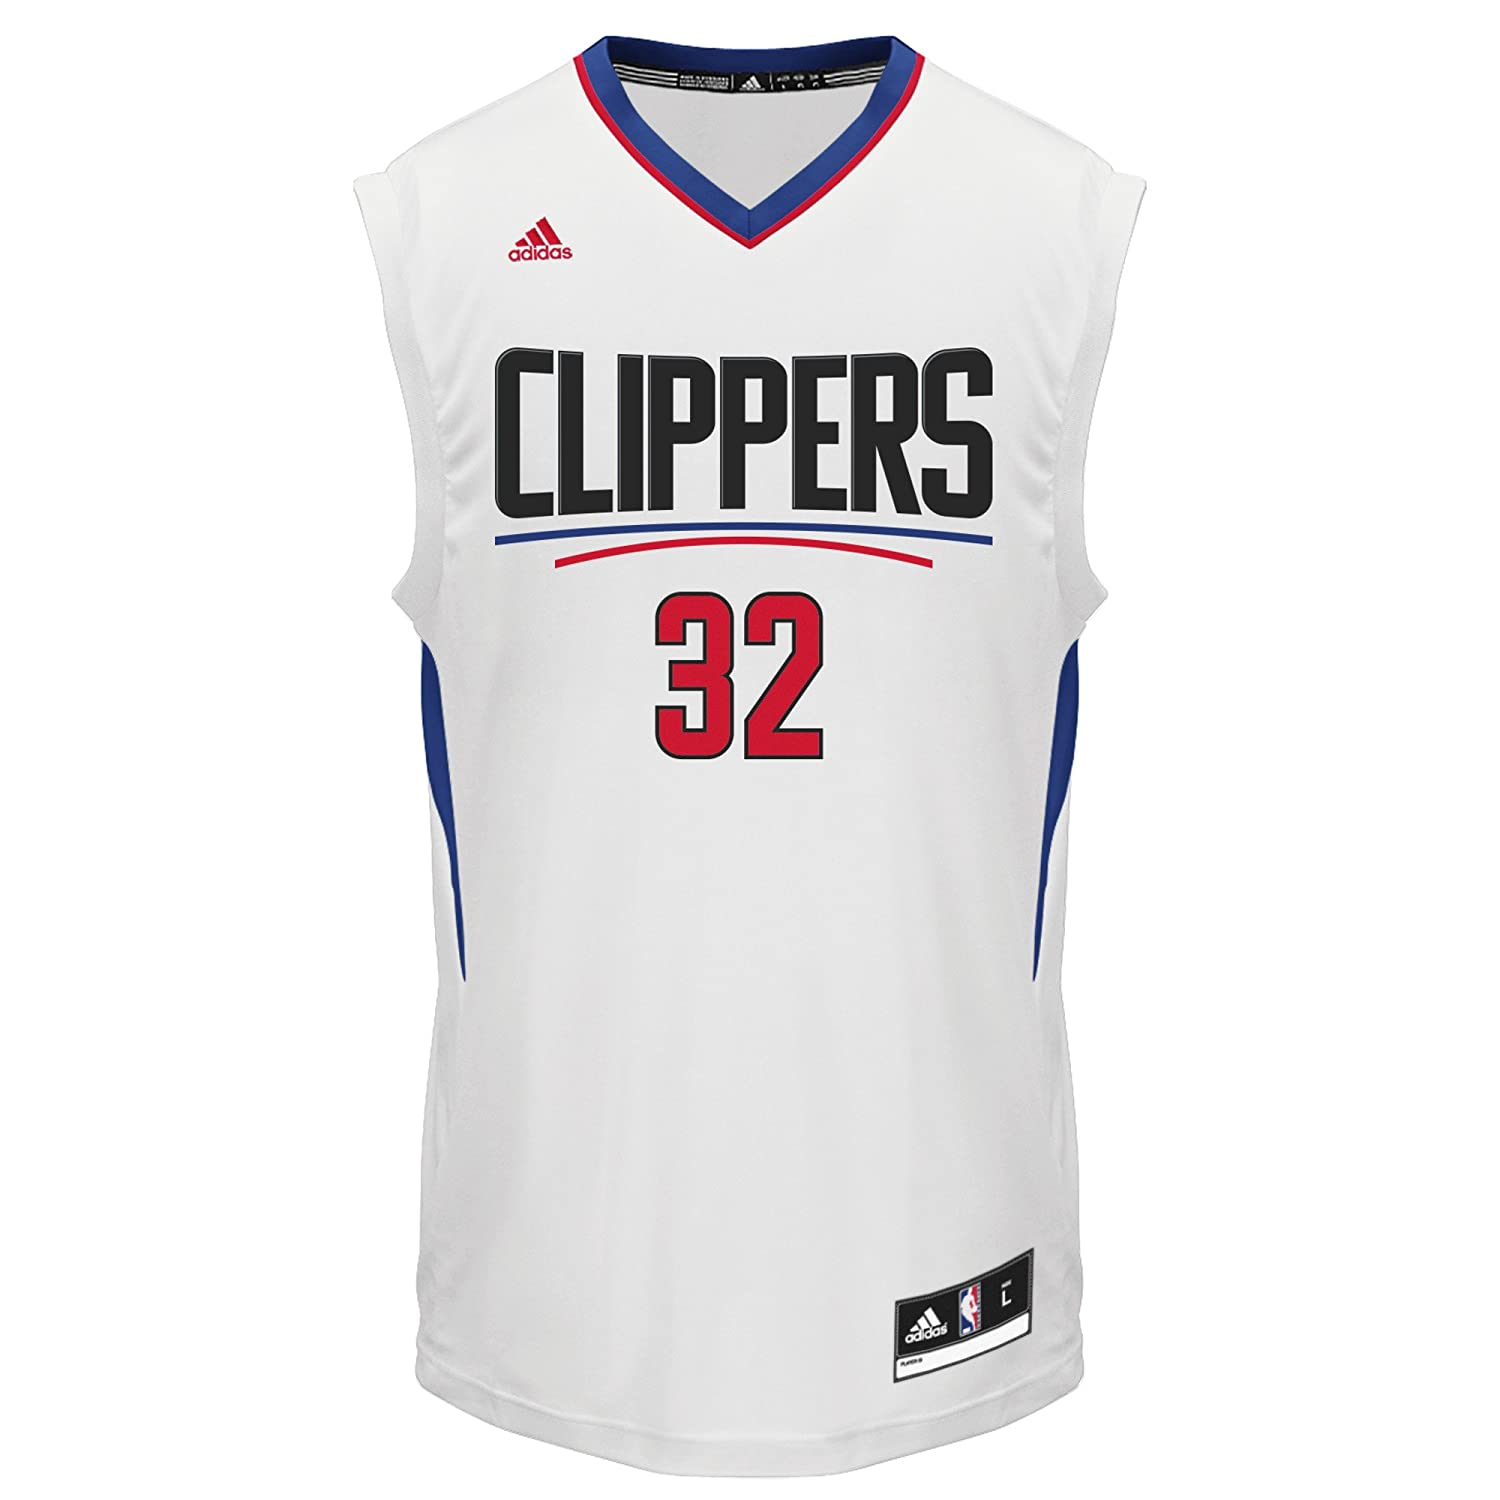 brand new f63a0 7b716 NBA Los Angeles Clippers Blake Griffin #32 Men's Replica Jersey, X-Large,  White